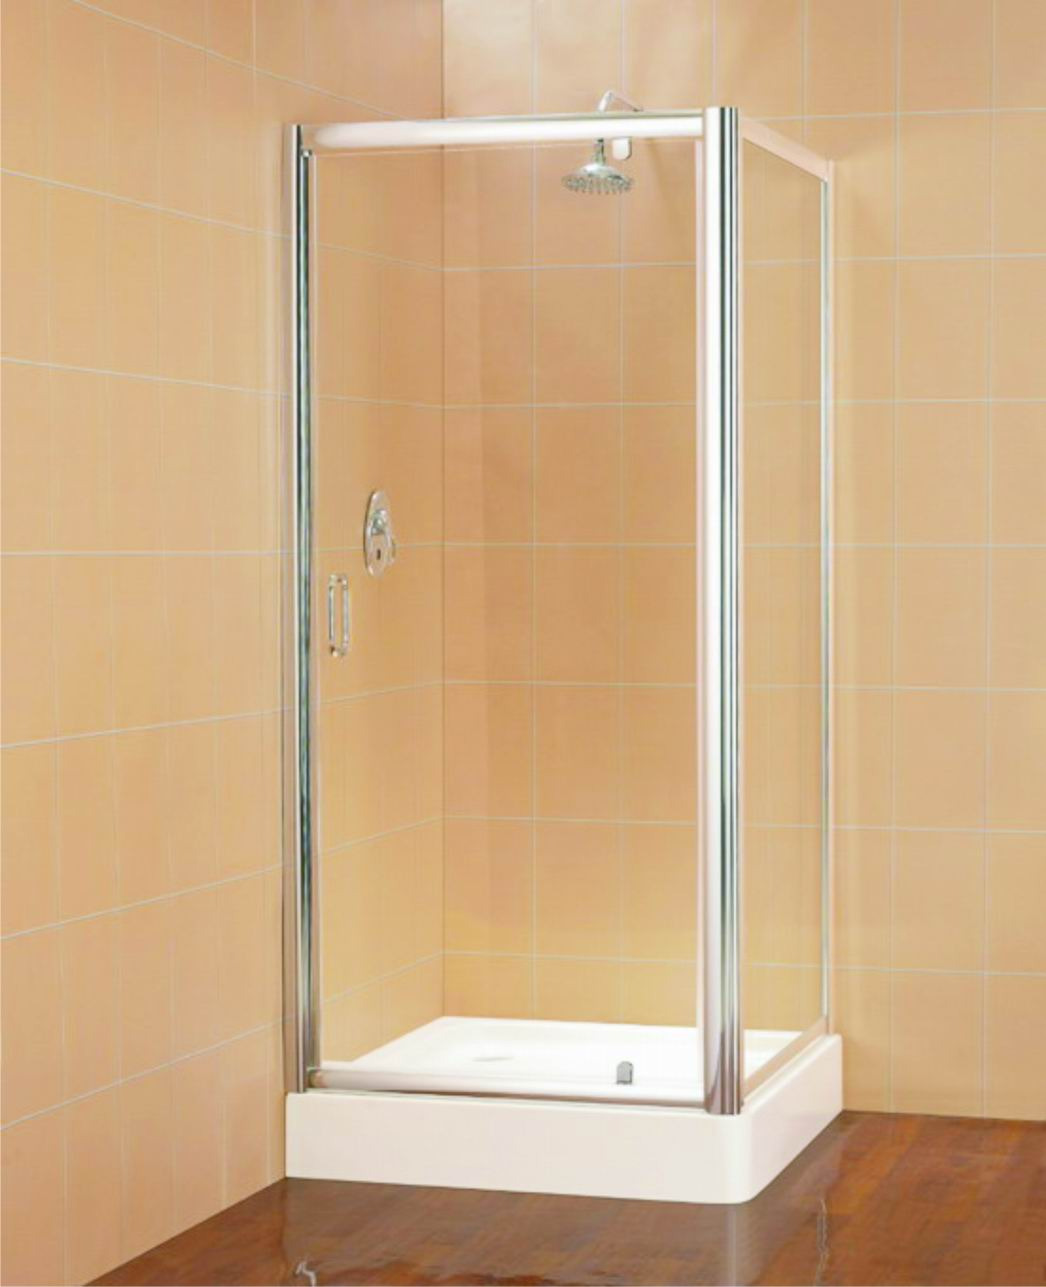 framed glass lowes shower enclosures with white base and orange tile wall showers lowes lowes shower enclosures glass lowes shower surround shower stall kits lowes corner shower insert tub and shower